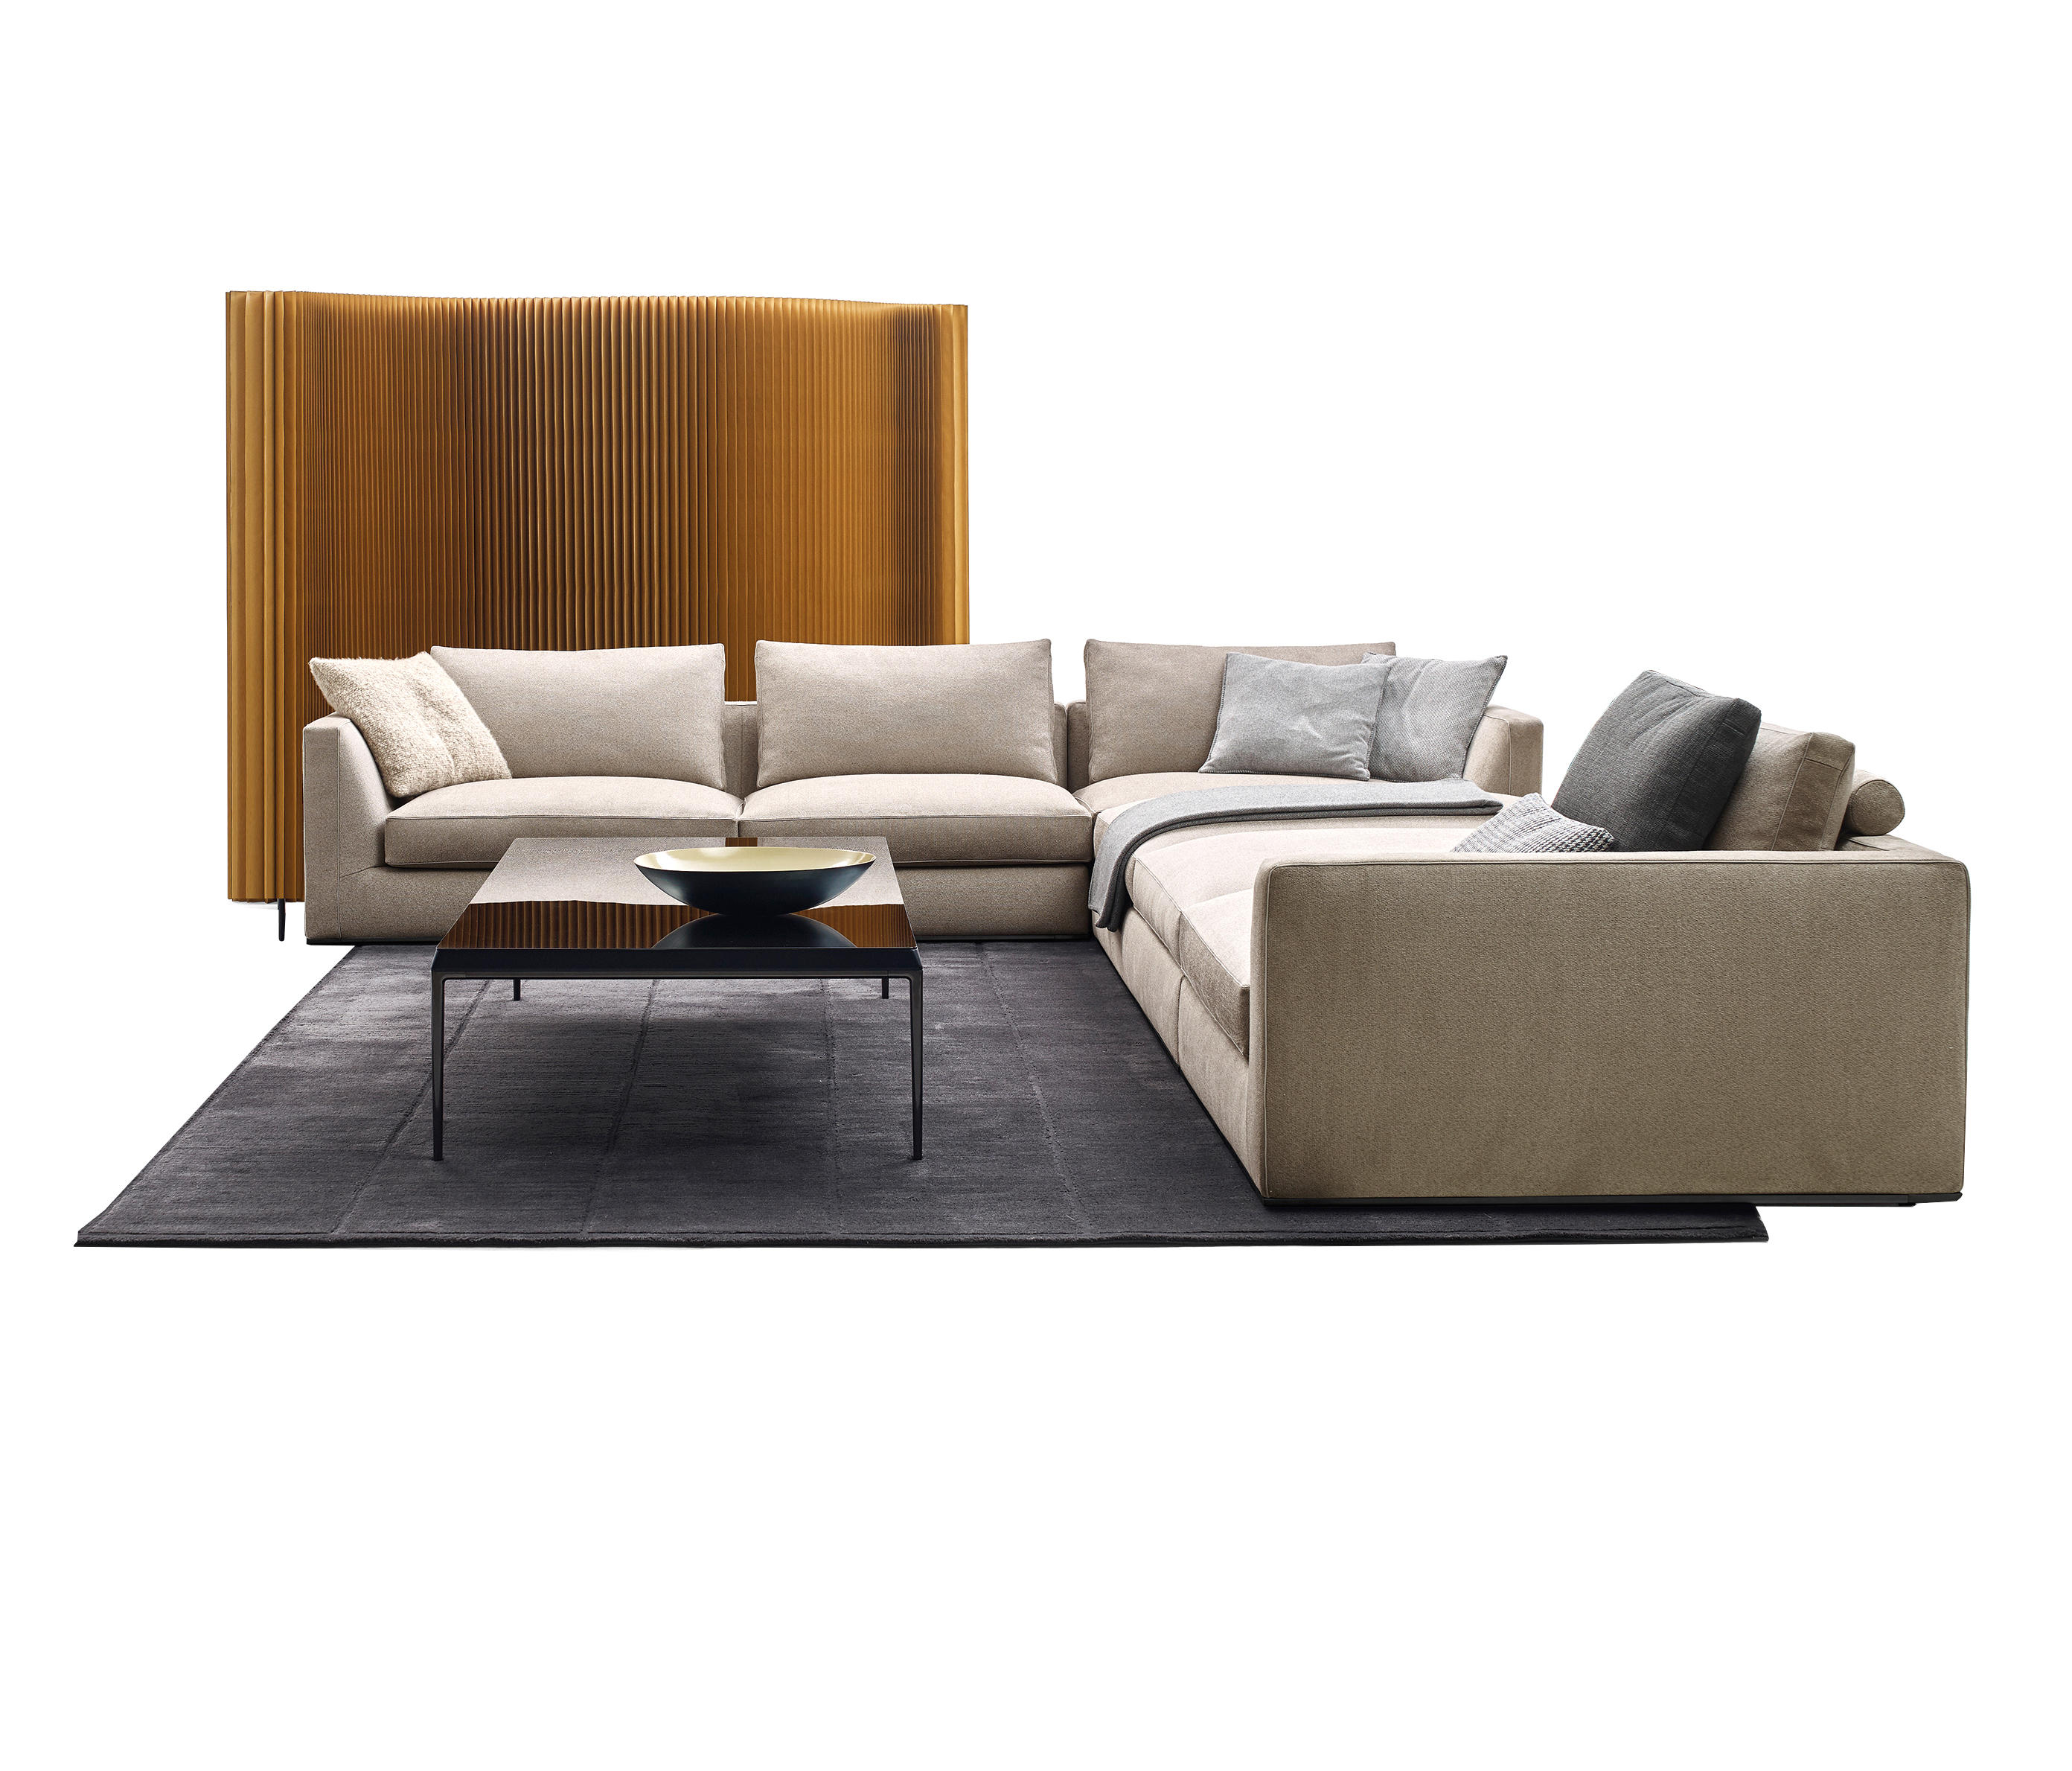 richard sofa modular seating systems from b b italia. Black Bedroom Furniture Sets. Home Design Ideas